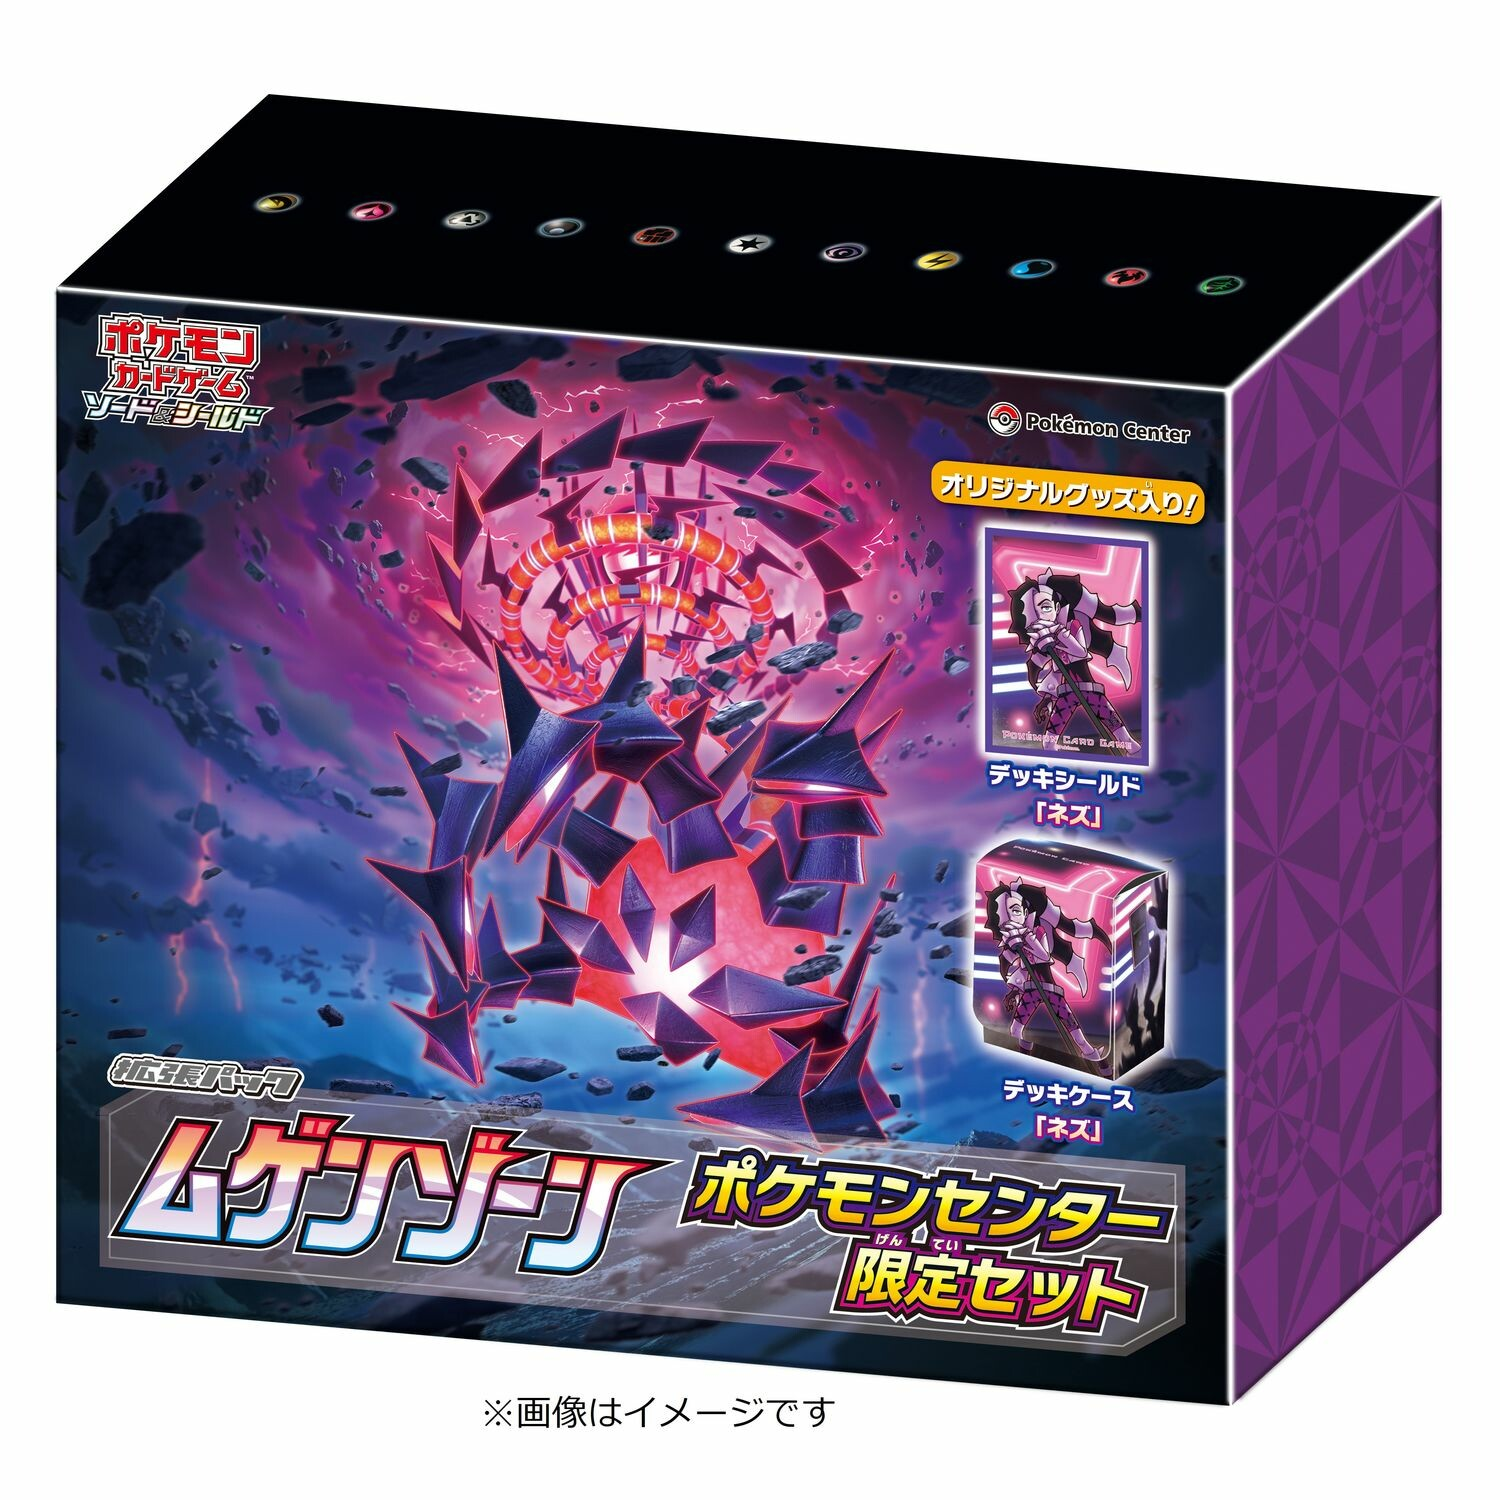 Pokemon Card Sword /& Shield Infinity Zone s3 Booster 1 BOX Japanese